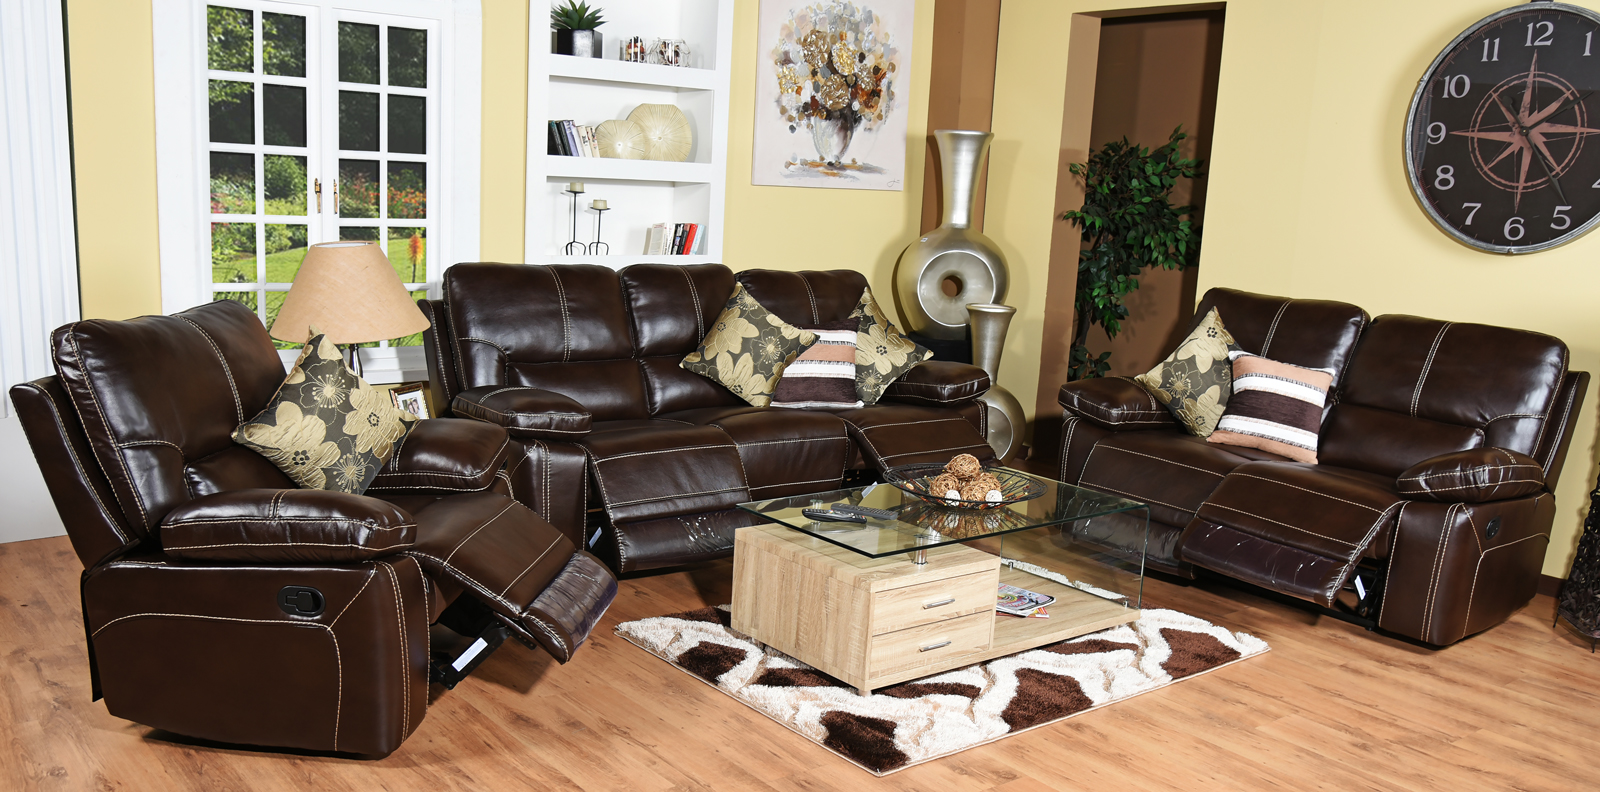 Montreal recliner lounge suite recliner lounge suite for for Affordable furniture montreal